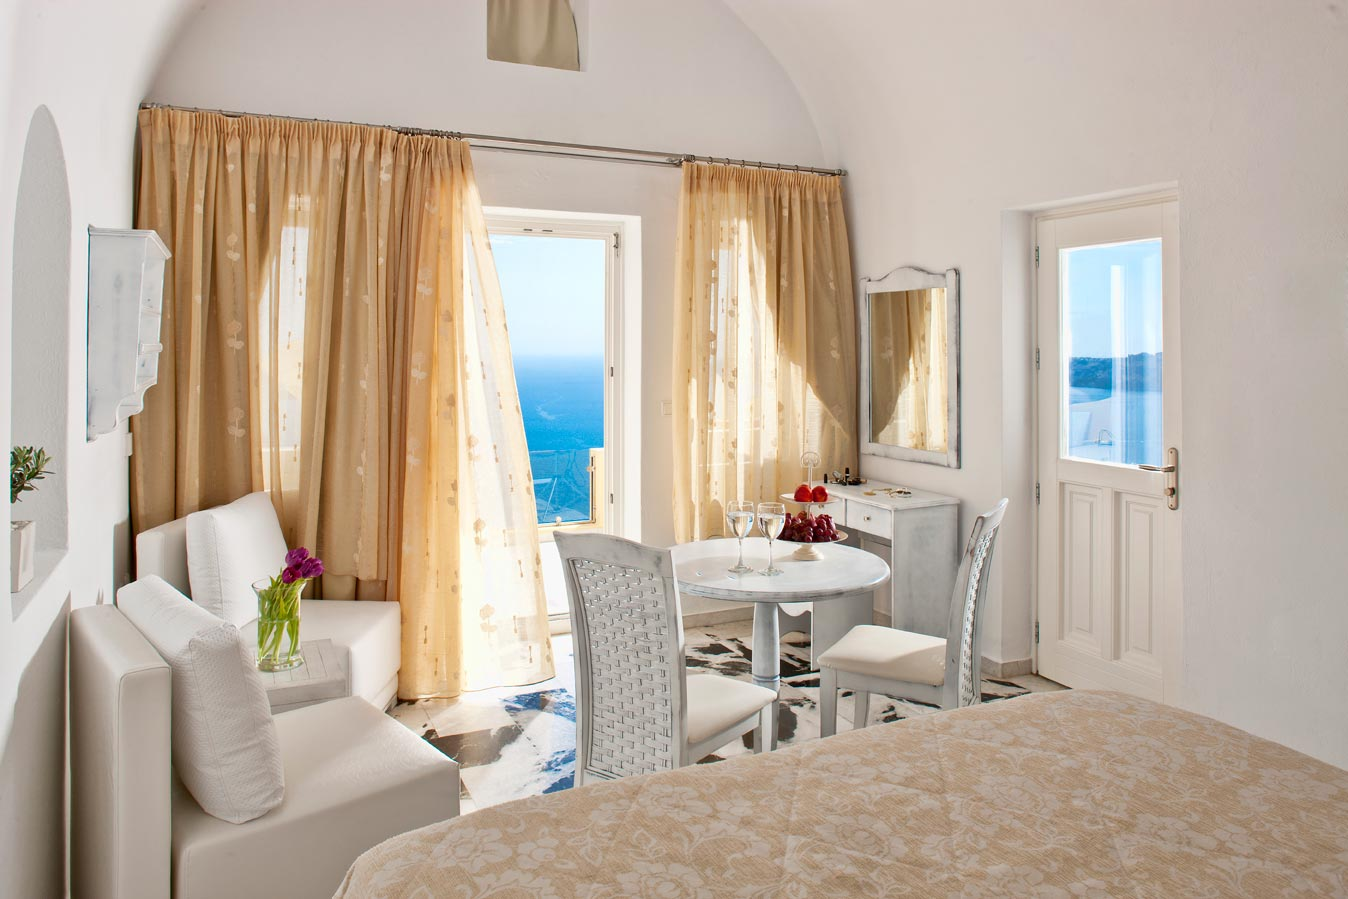 Chambre D Hote Santorin Santorini Princess Spa Hotel Official Booking Engine